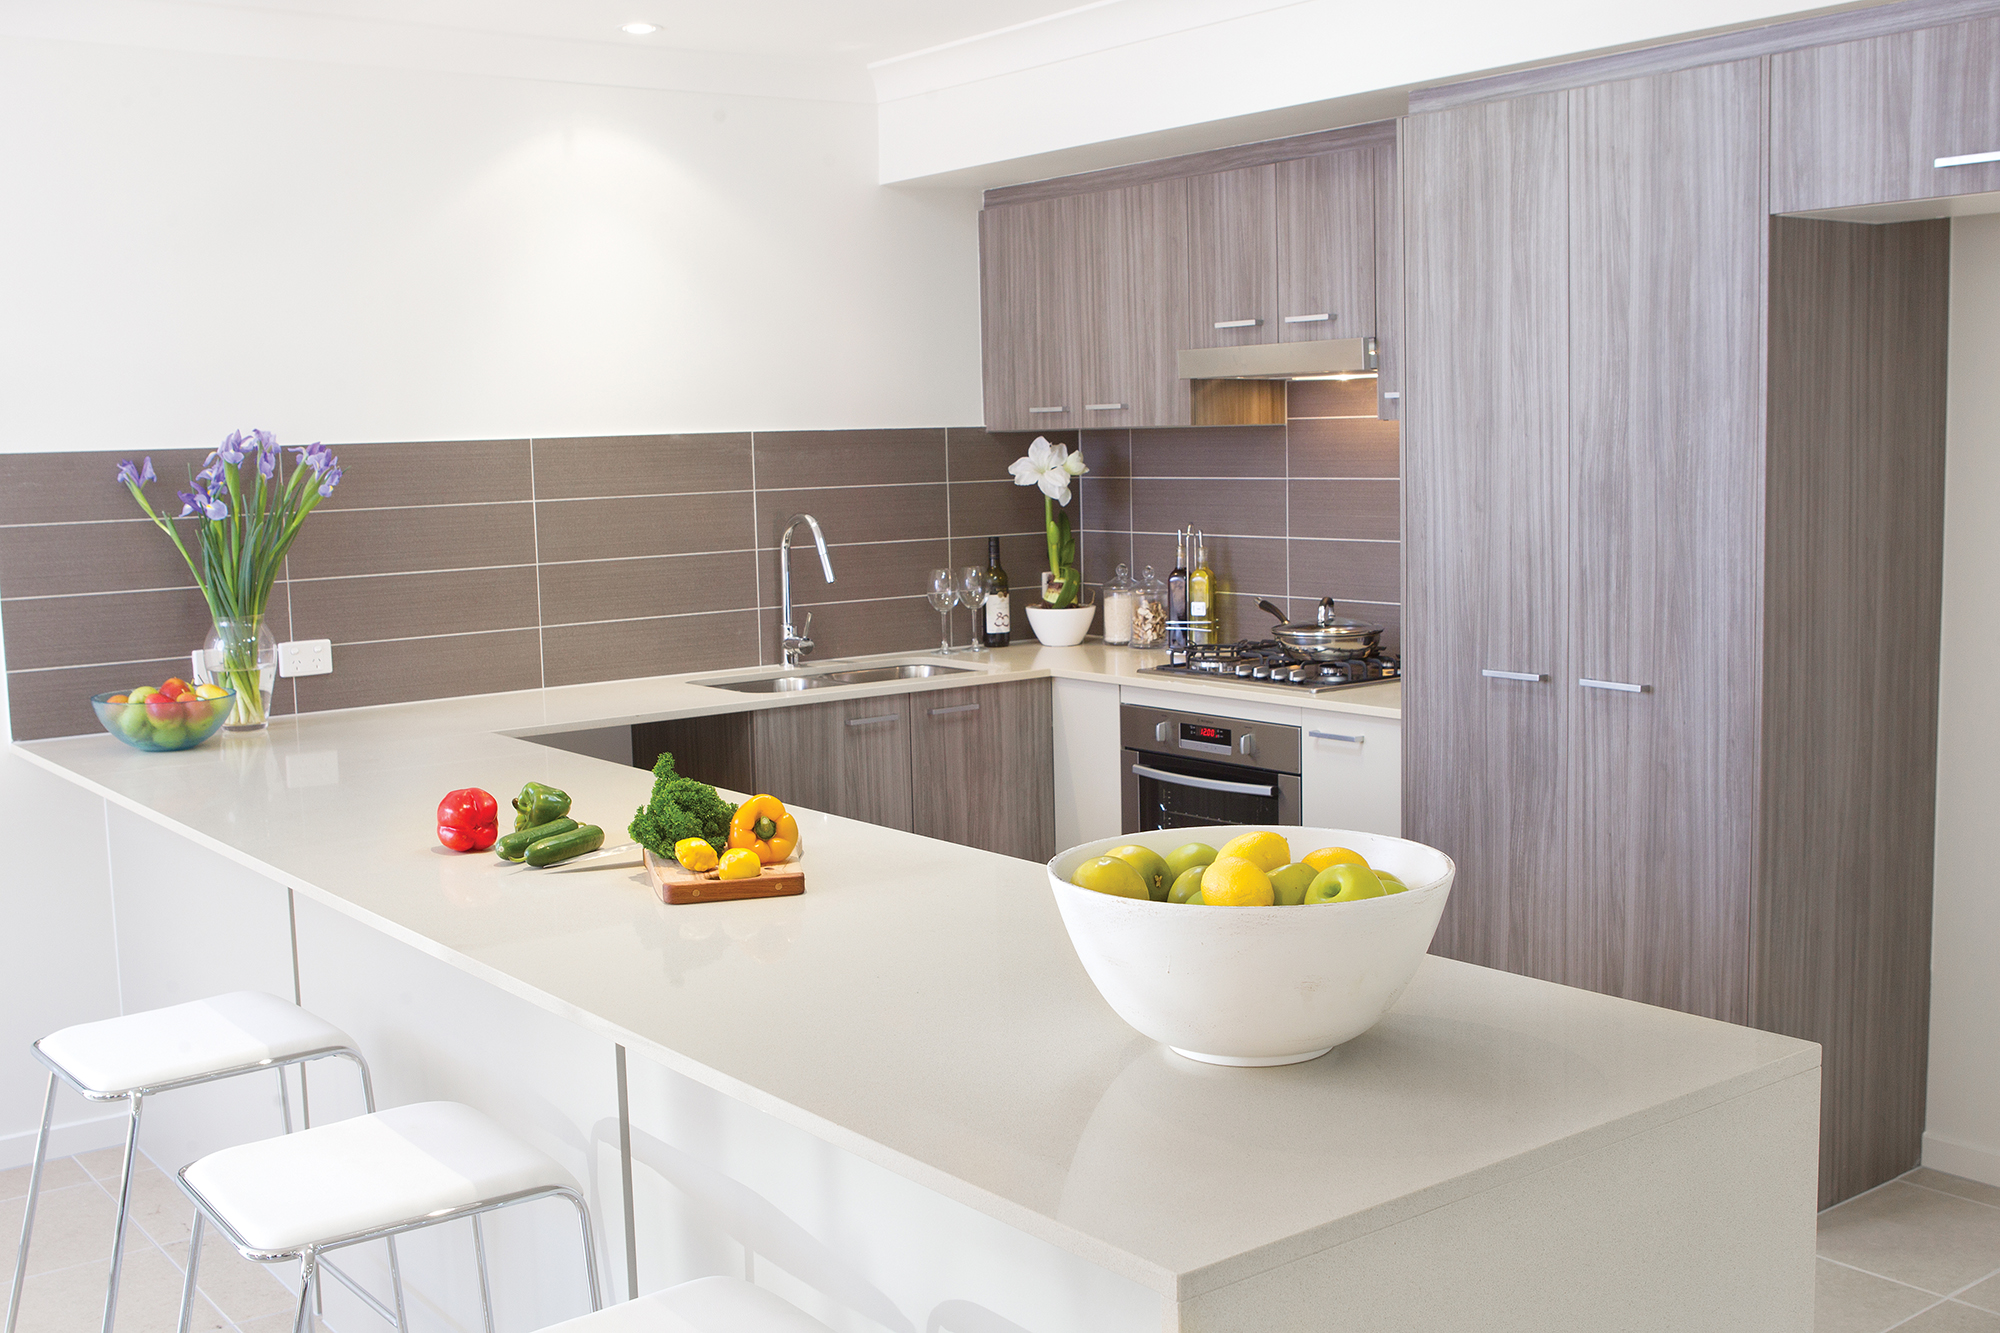 8 Home Design Ideas for Your Dream Kitchen